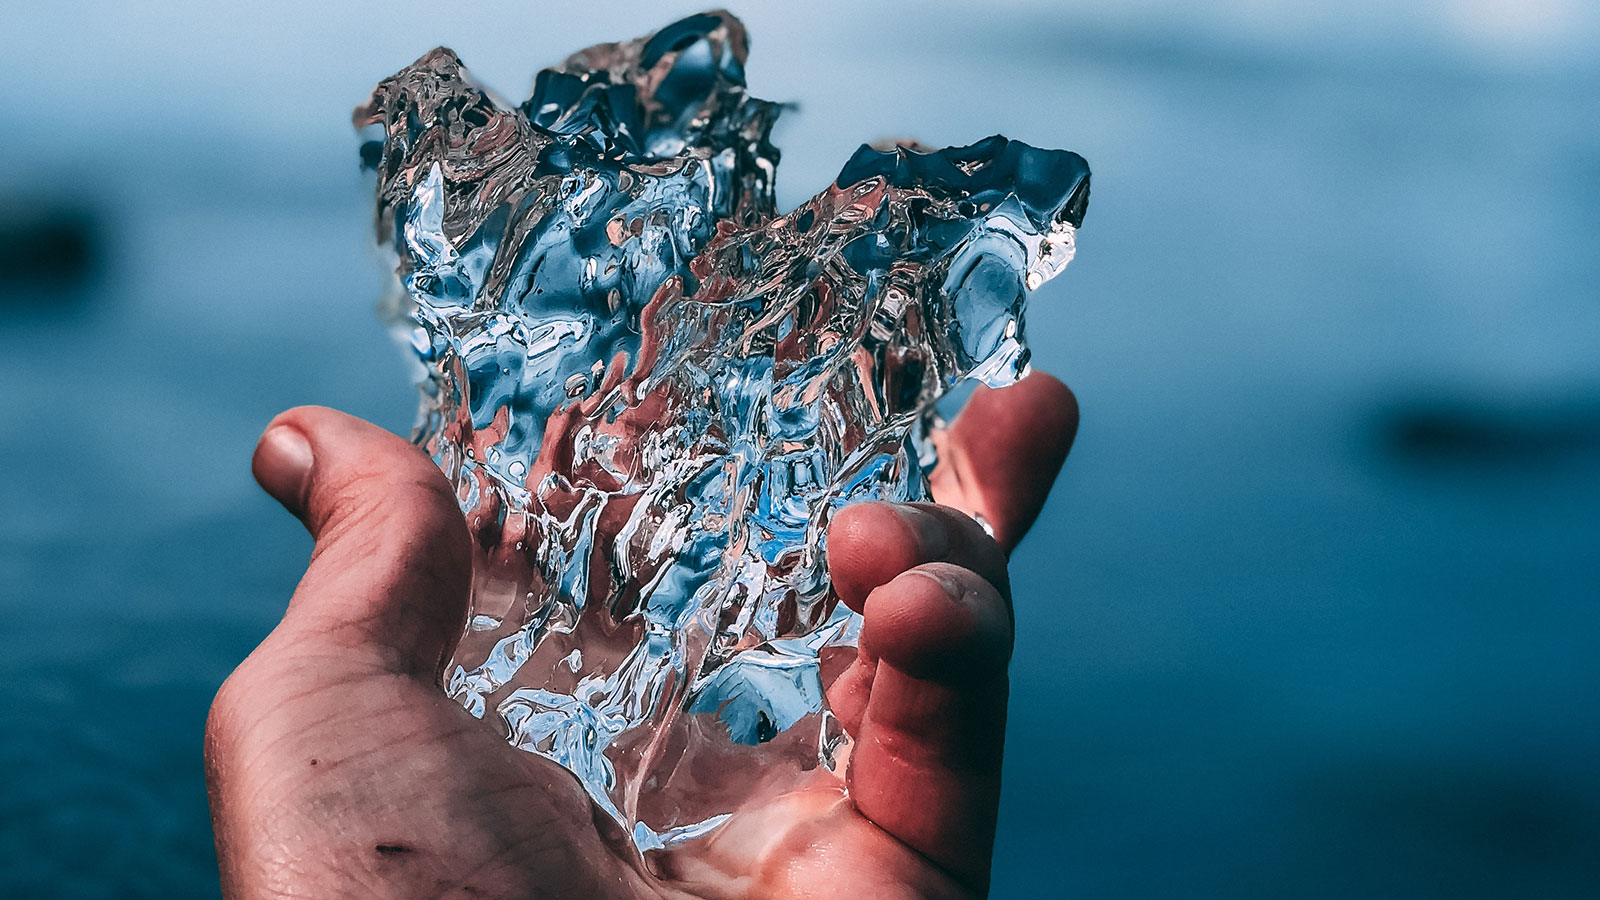 Hand holding a large piece of ice